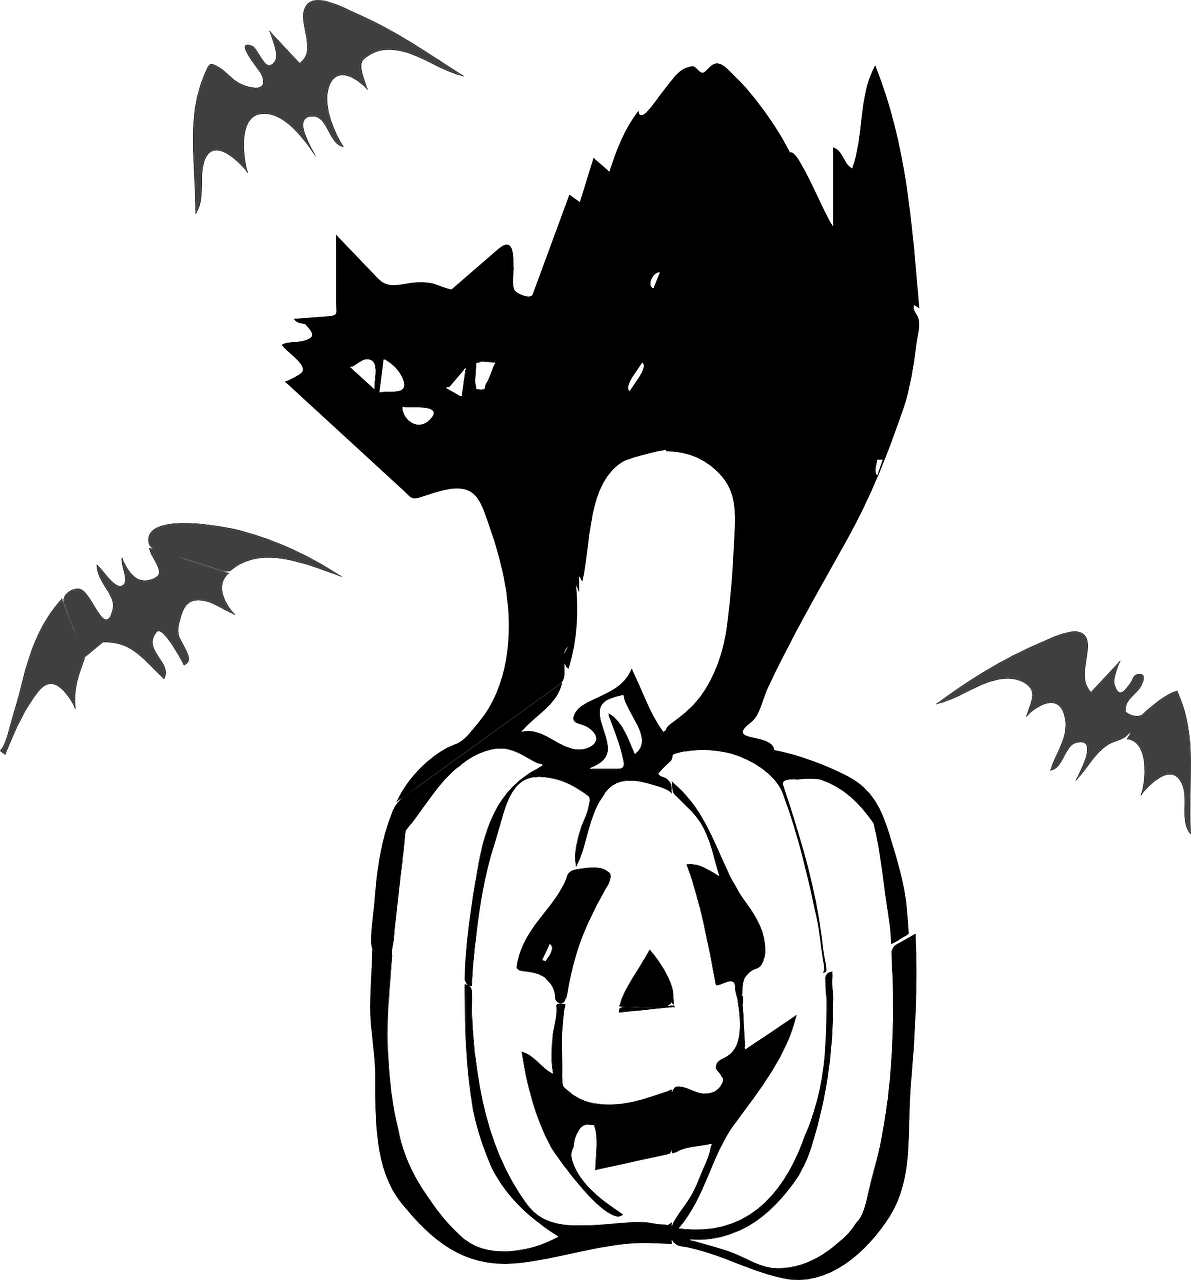 jack o lantern black cat pumpkin free photo